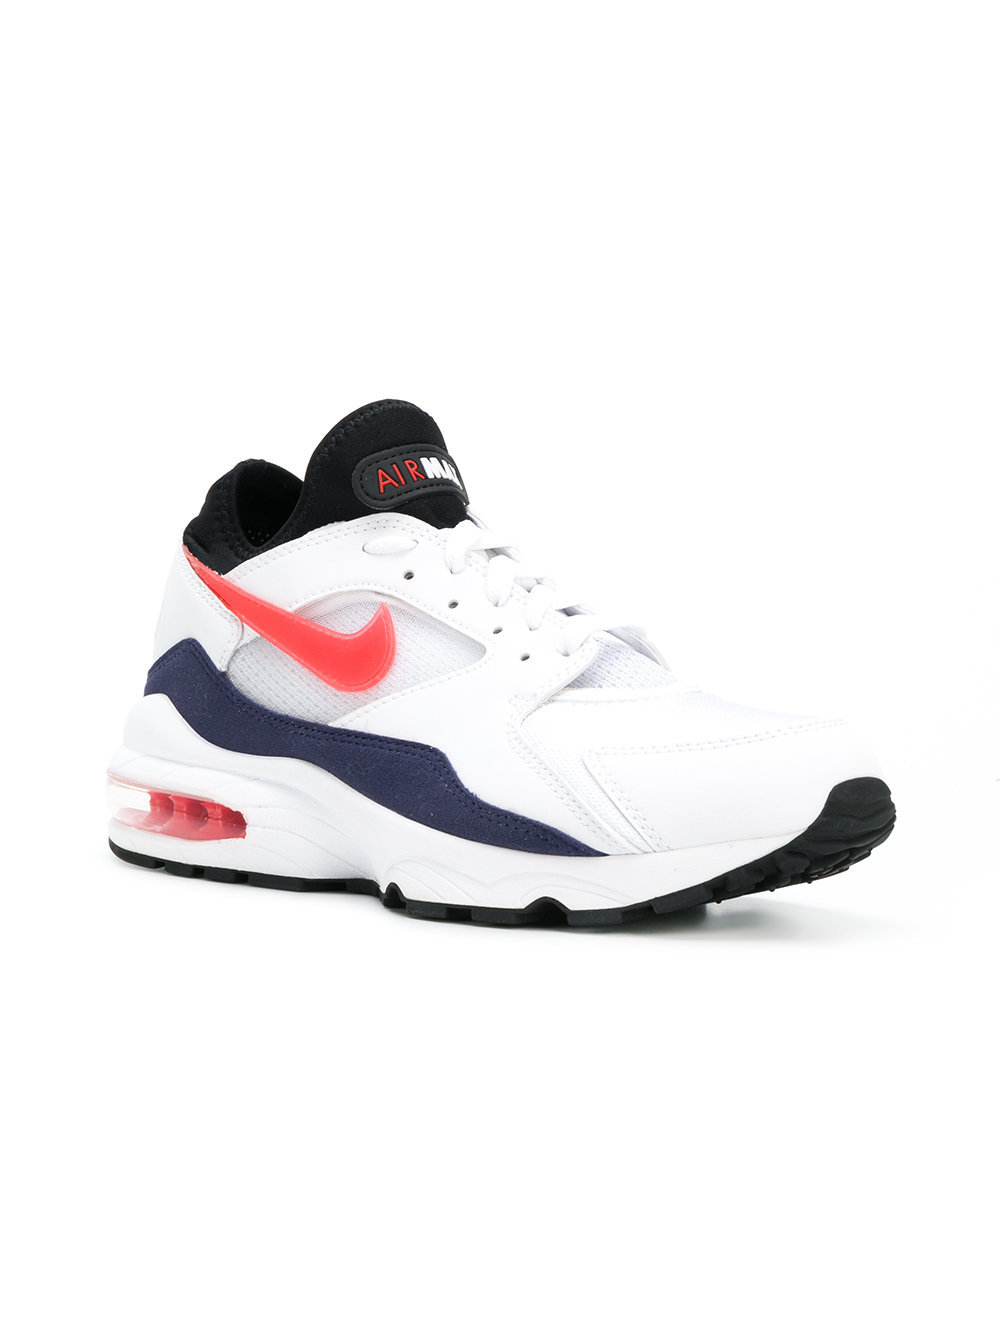 timeless design ddcca 4e9f8 ... Nike Air Max 93 Sneakers ...